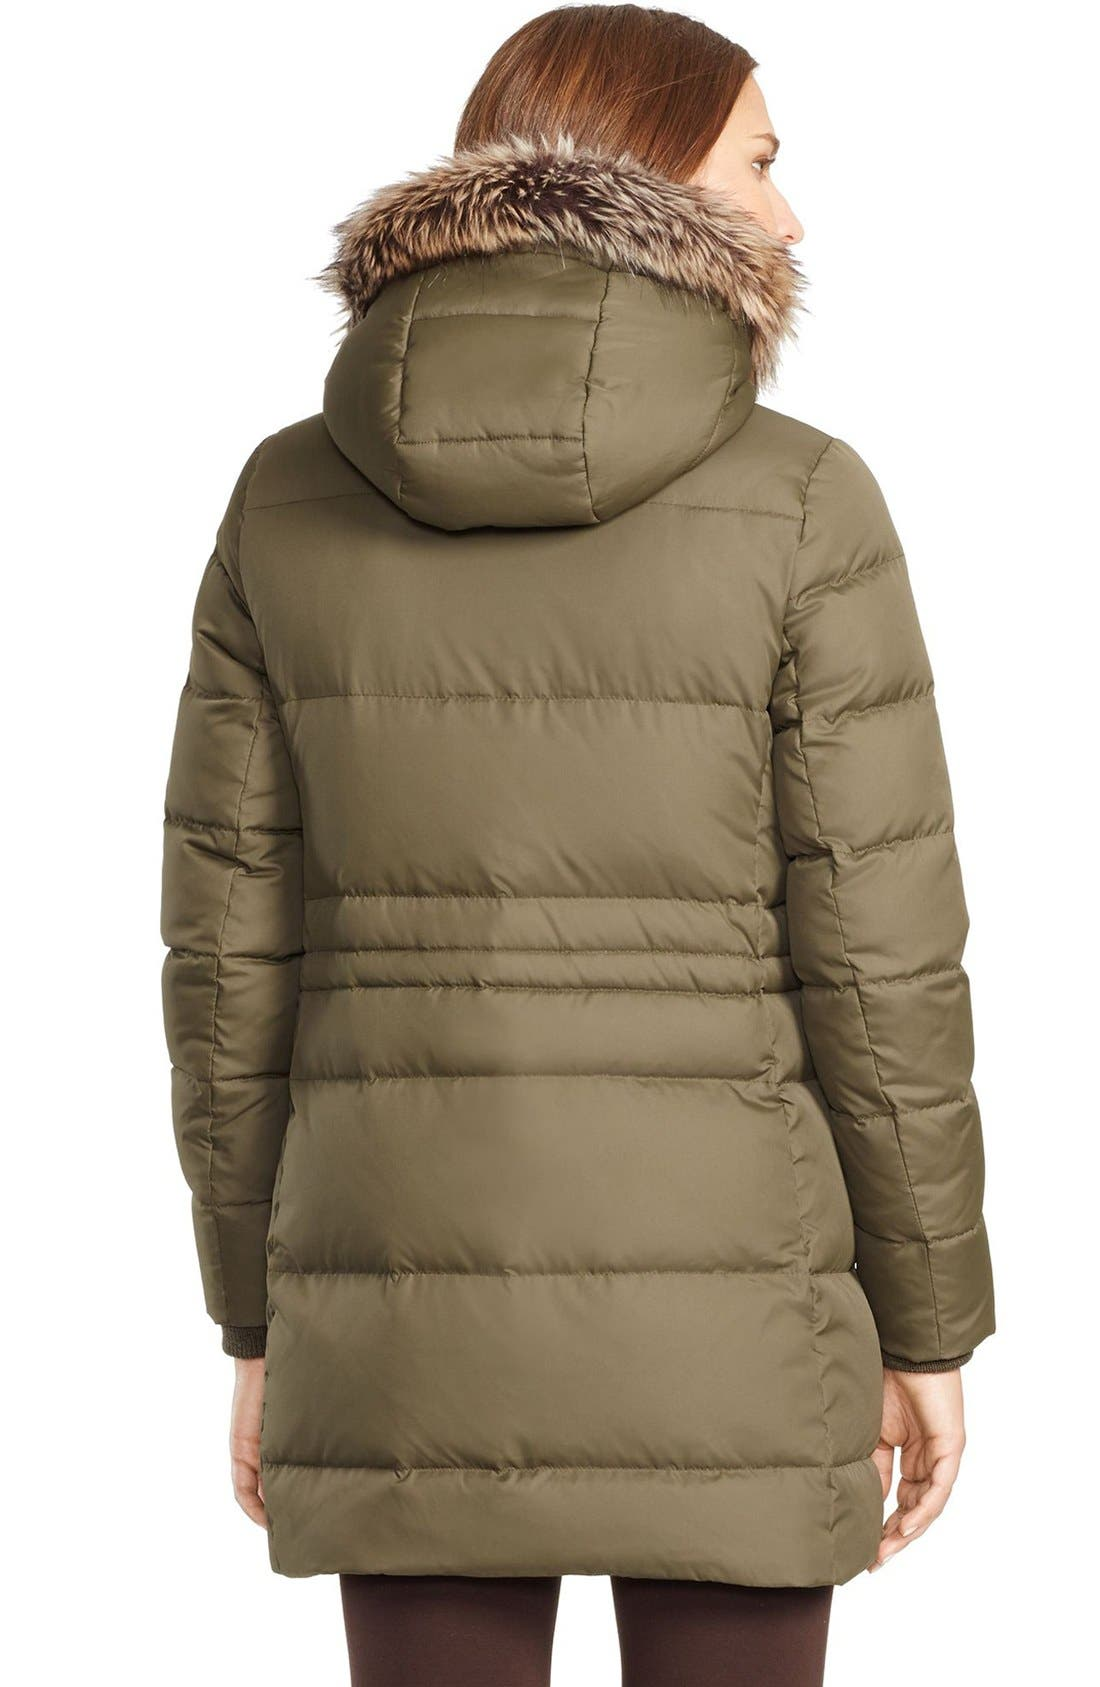 LAUREN RALPH LAUREN, Faux Fur Trim Down & Feather Fill Parka, Alternate thumbnail 2, color, 313